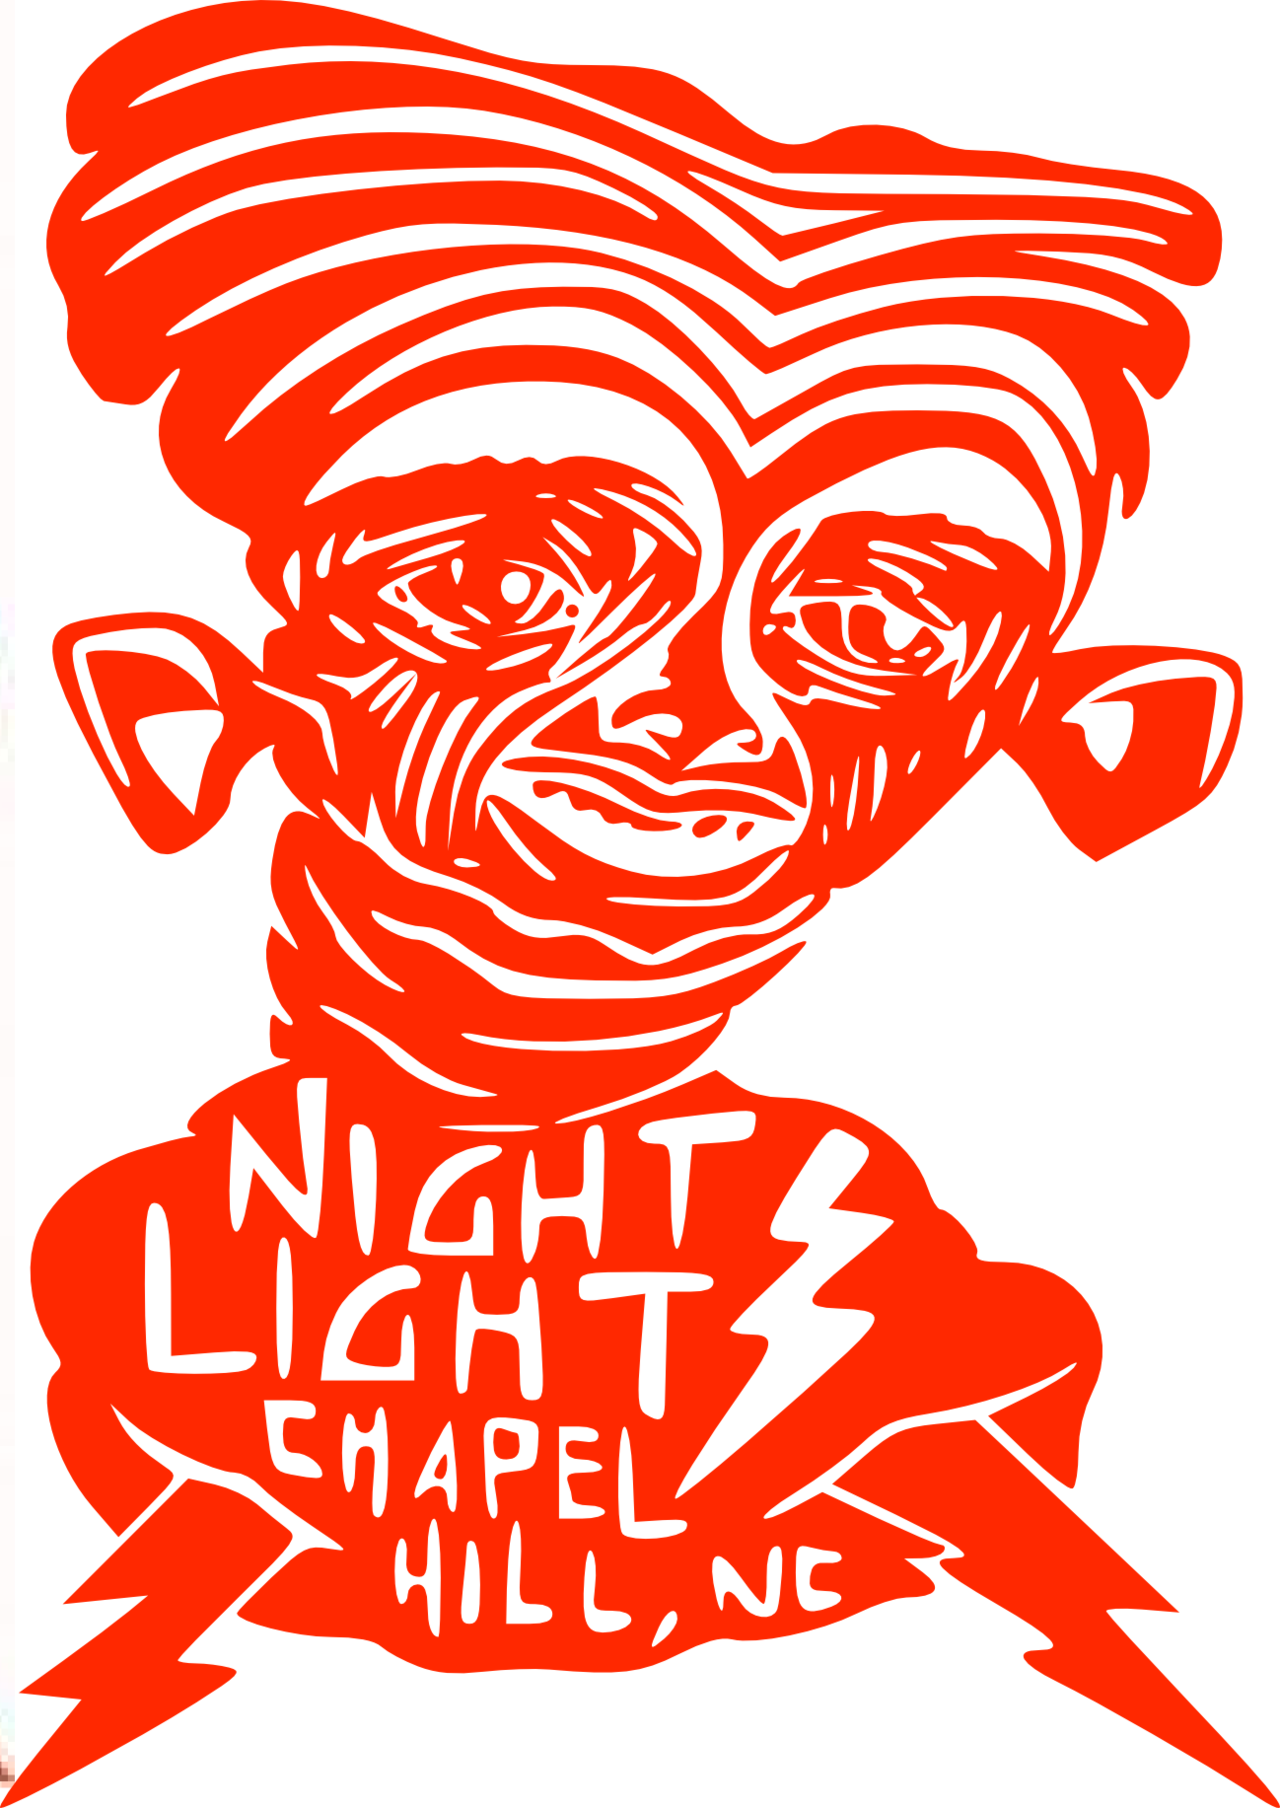 Nightlight is a tiny art-land vortex run by low-income party people, a dedicated task force of well-wishers and sympathizers. The whole operation is backed up by a fabulous community of fans and music lovers who support experimentation!    For booking, email nightlightbooking@gmail.com  NEW WEBSITE COMING SOON